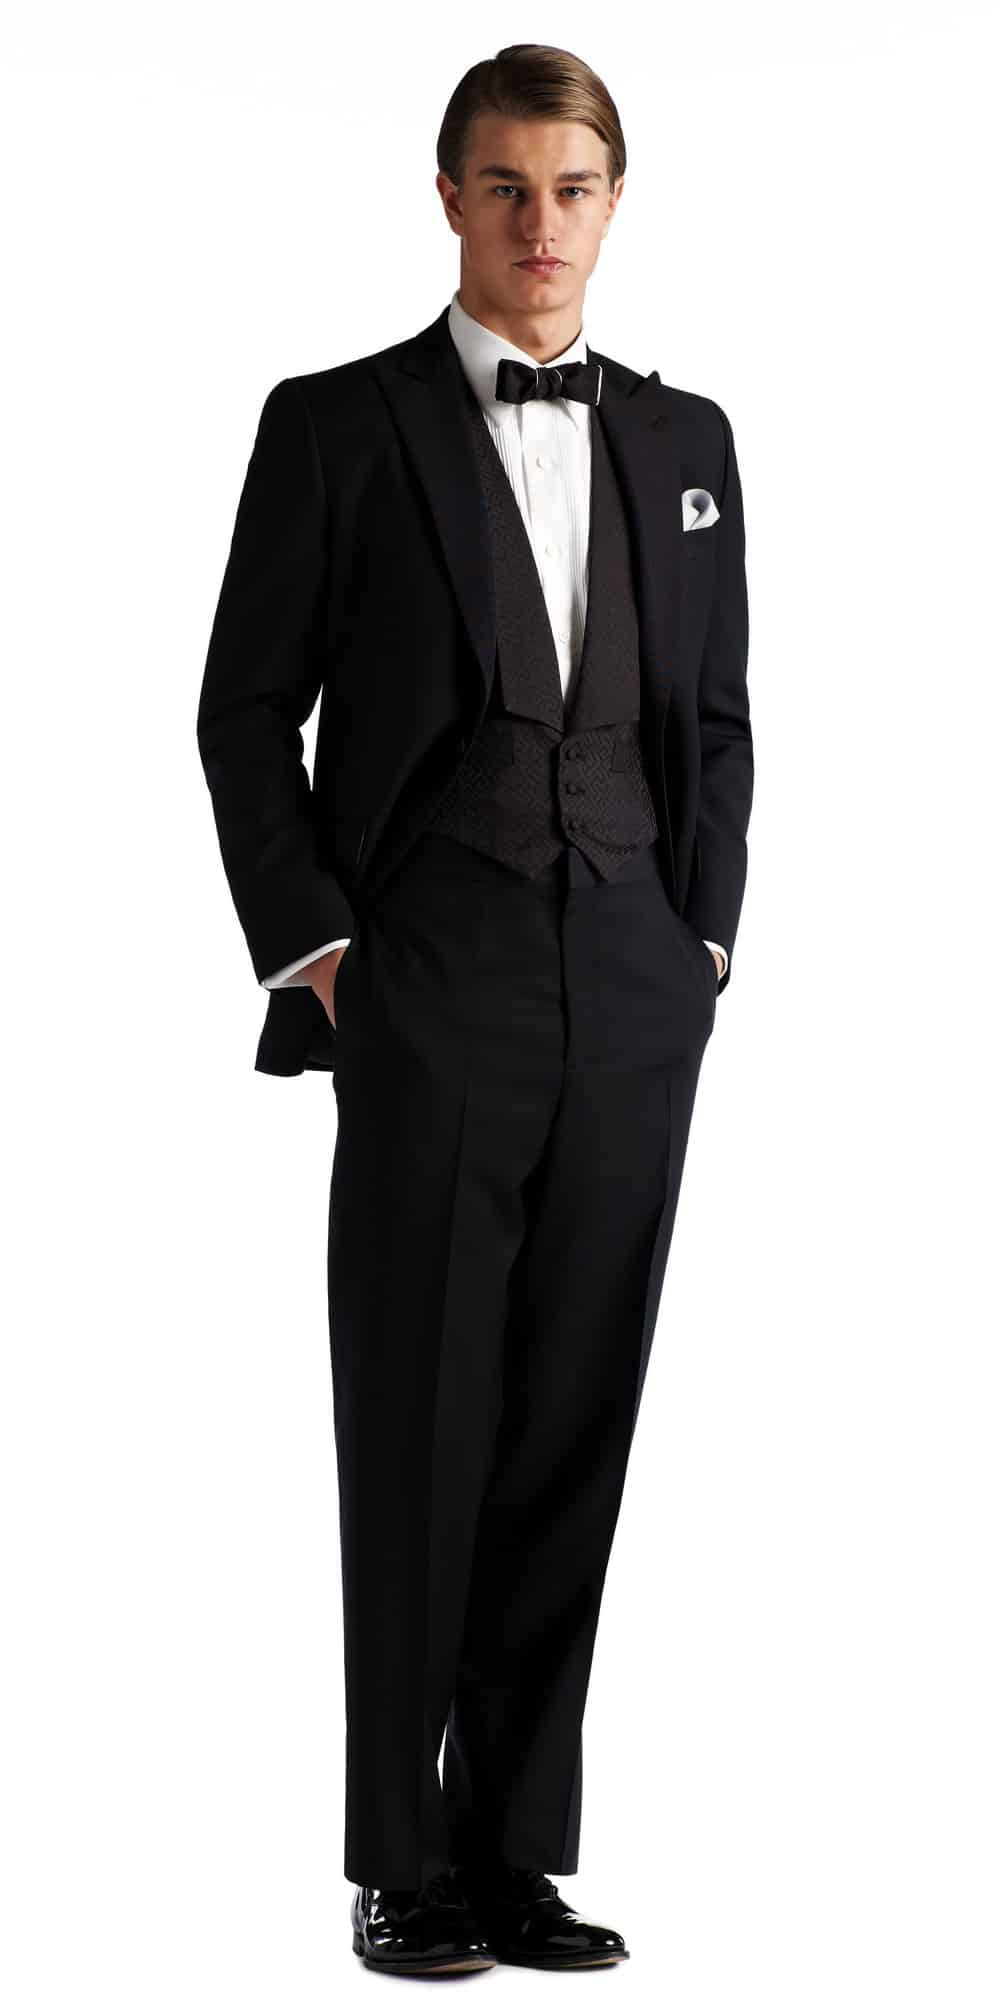 Gatsby Collection Tuxedo With Peaked Lapels Flap Pockets And Patterned SB Vest